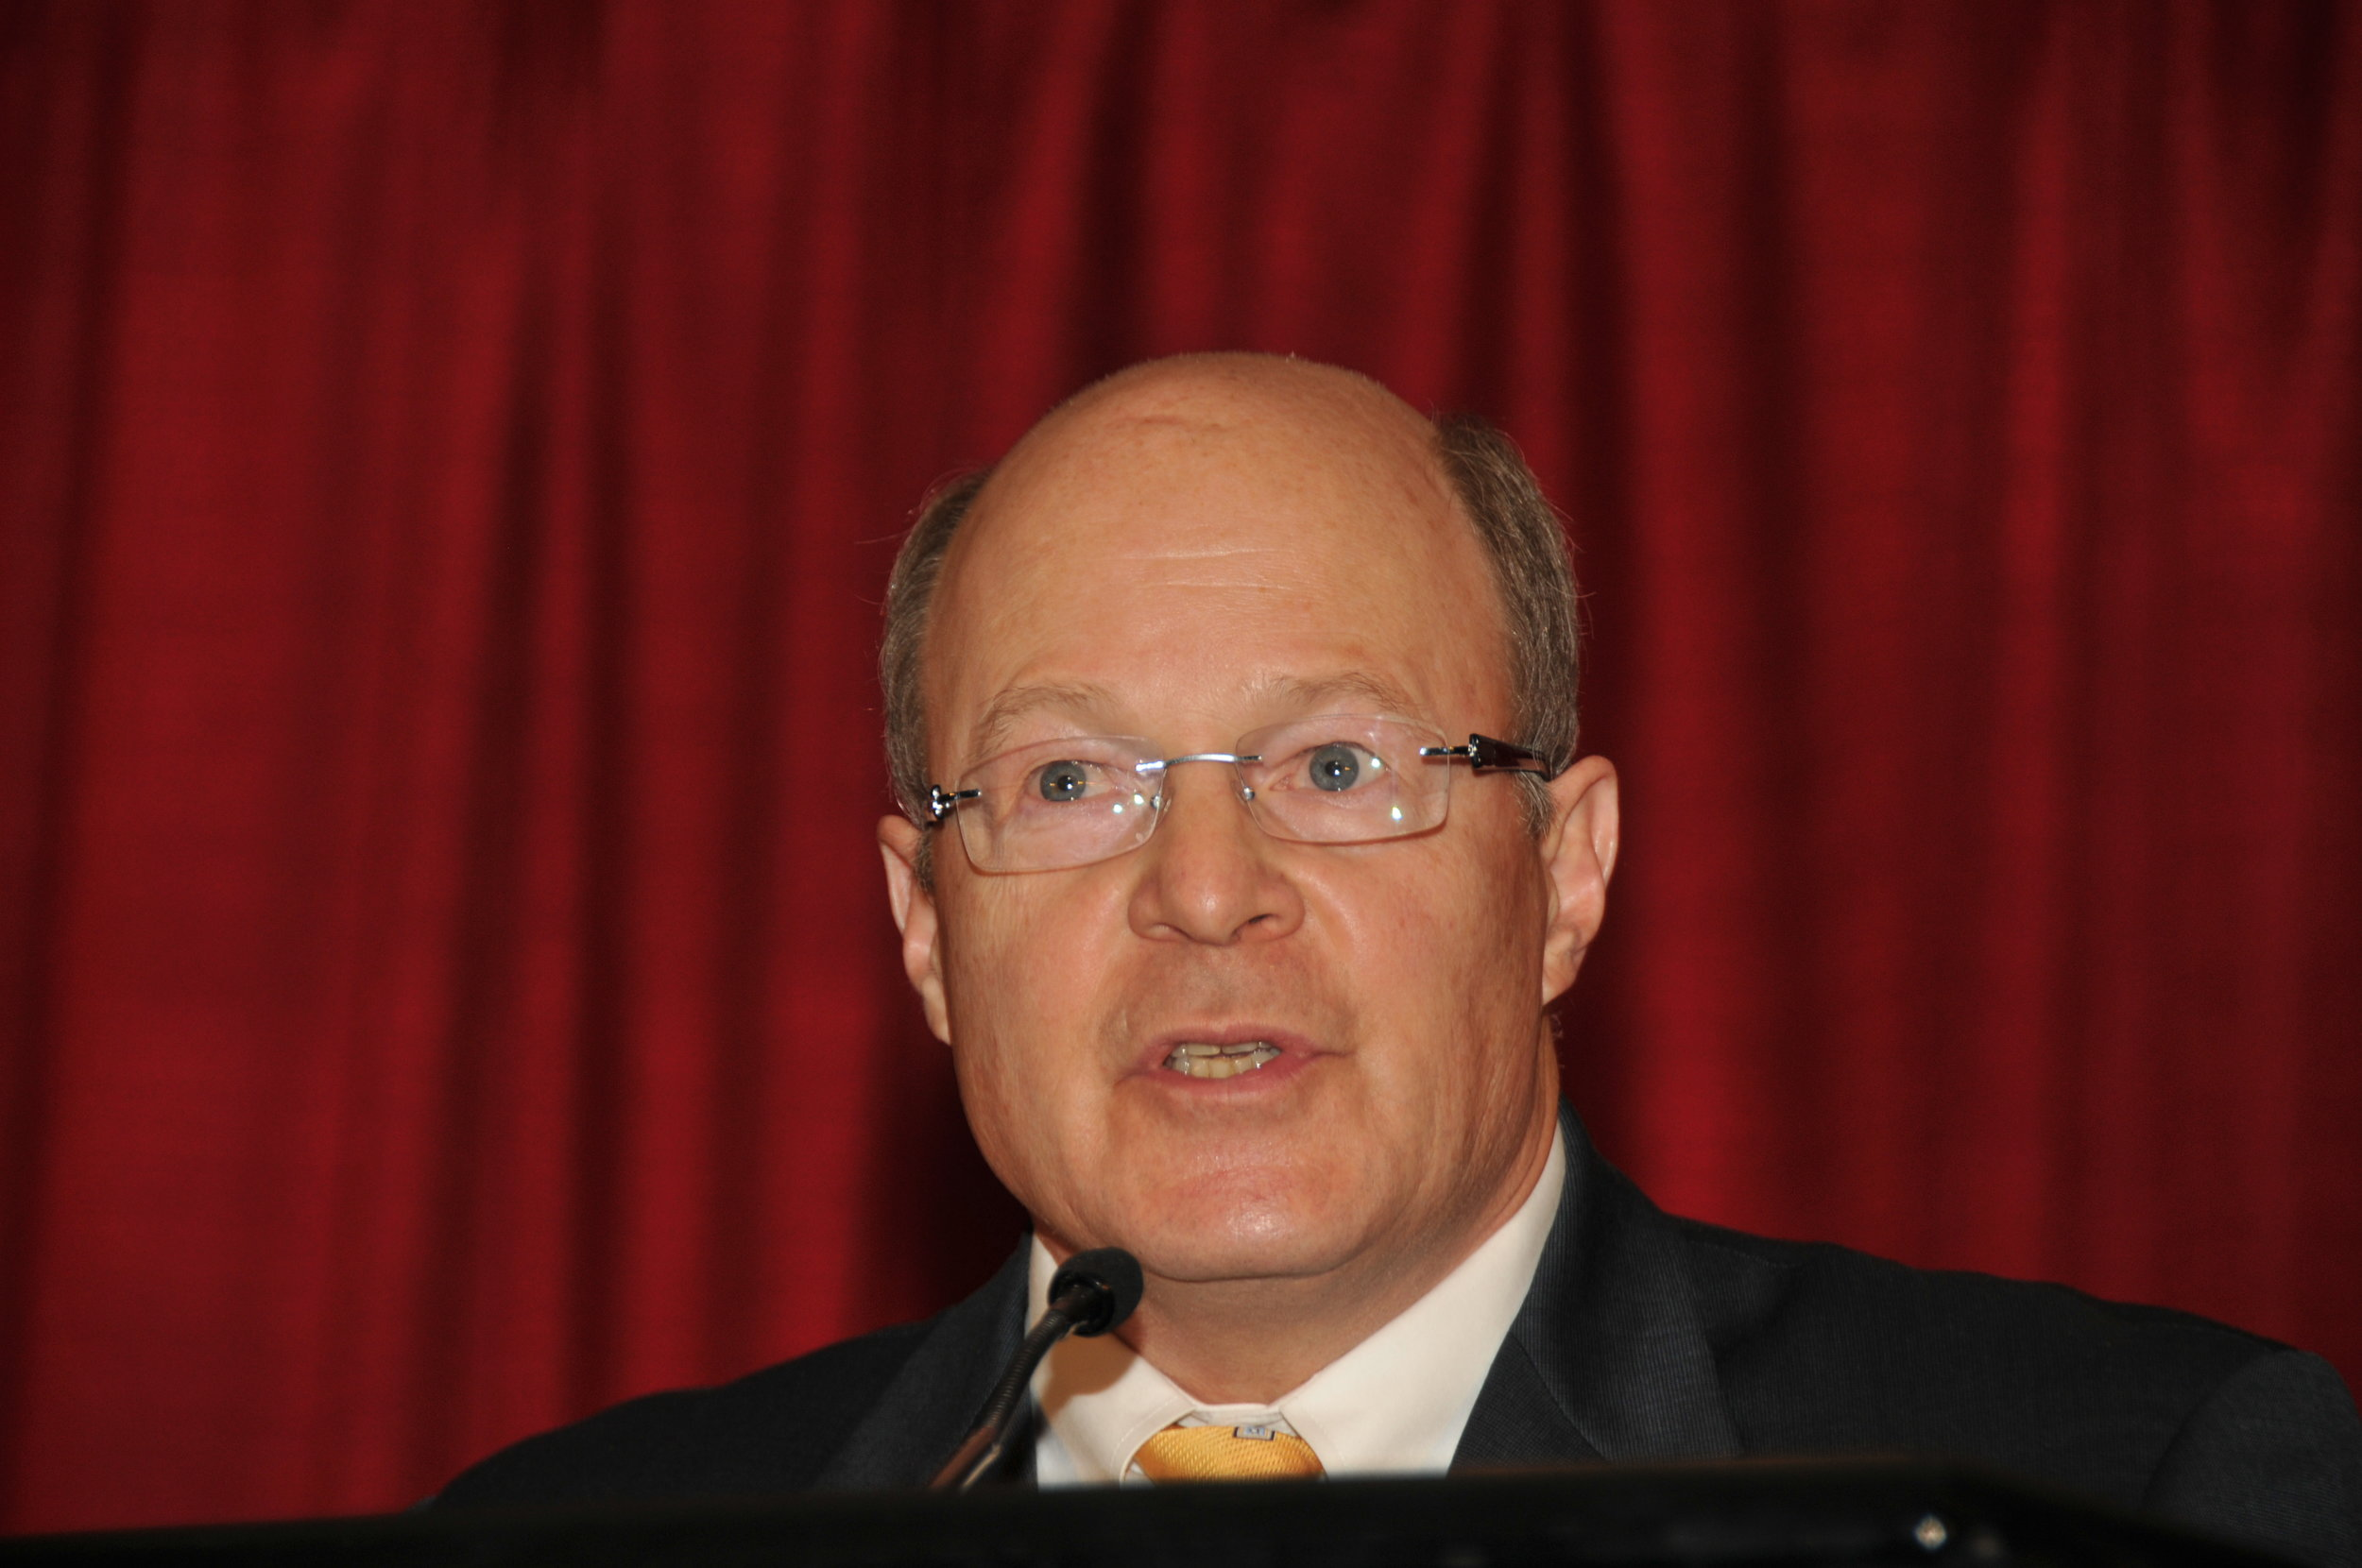 Leadership - TED ROSSI   PRESIDENT & CEOTed Rossi, President and CEO, is one of the most well-known people in the American hardwood export industry. He has been President of the National Hardwood Lumber Assoc., Chairman of American Hardwood Export Council, and was the founding President of the Hardwood Federation in the United States.Today the Rossi name is a reference point for industry leadership and product excellence in export markets around the world.